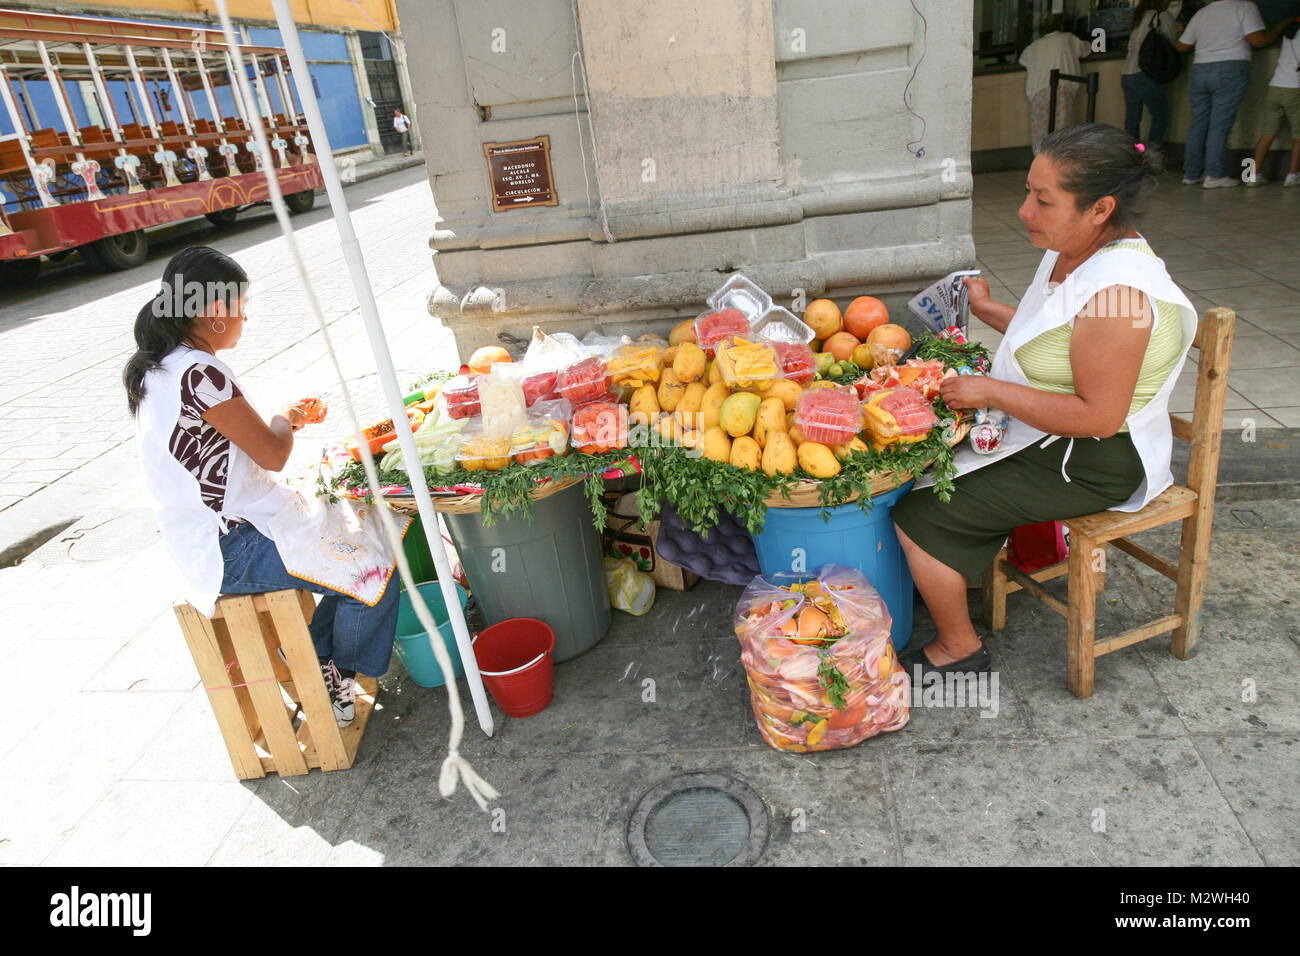 OAXACA, MEXICO - MARCH 7th, 2012: Women selling fresh fruits and juices on a  central  street in  Oaxaca city, Mexico Stock Photo